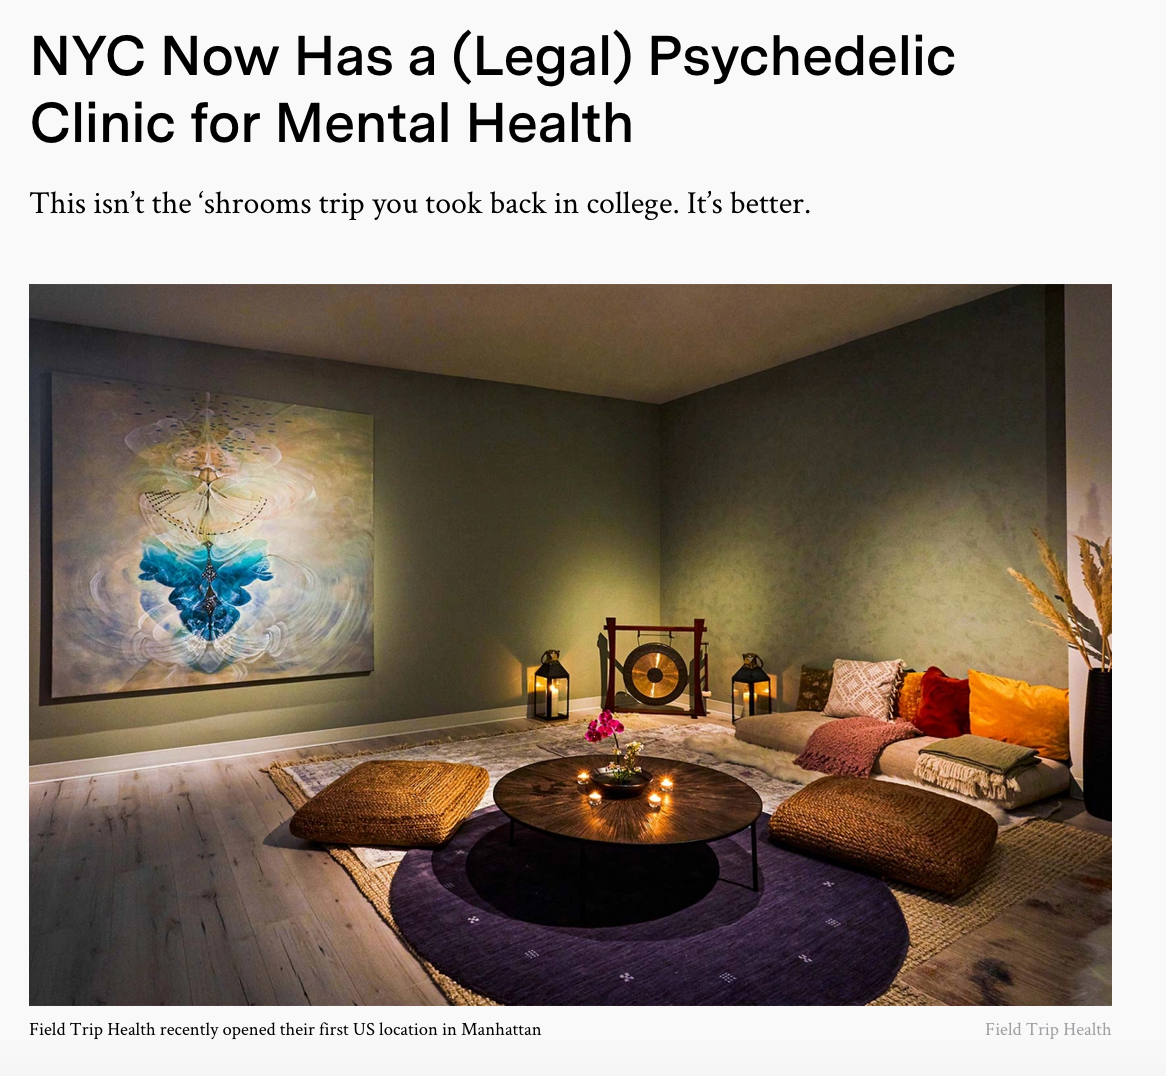 NYC Now Has a (Legal) Psychedelic Clinic for Mental Health